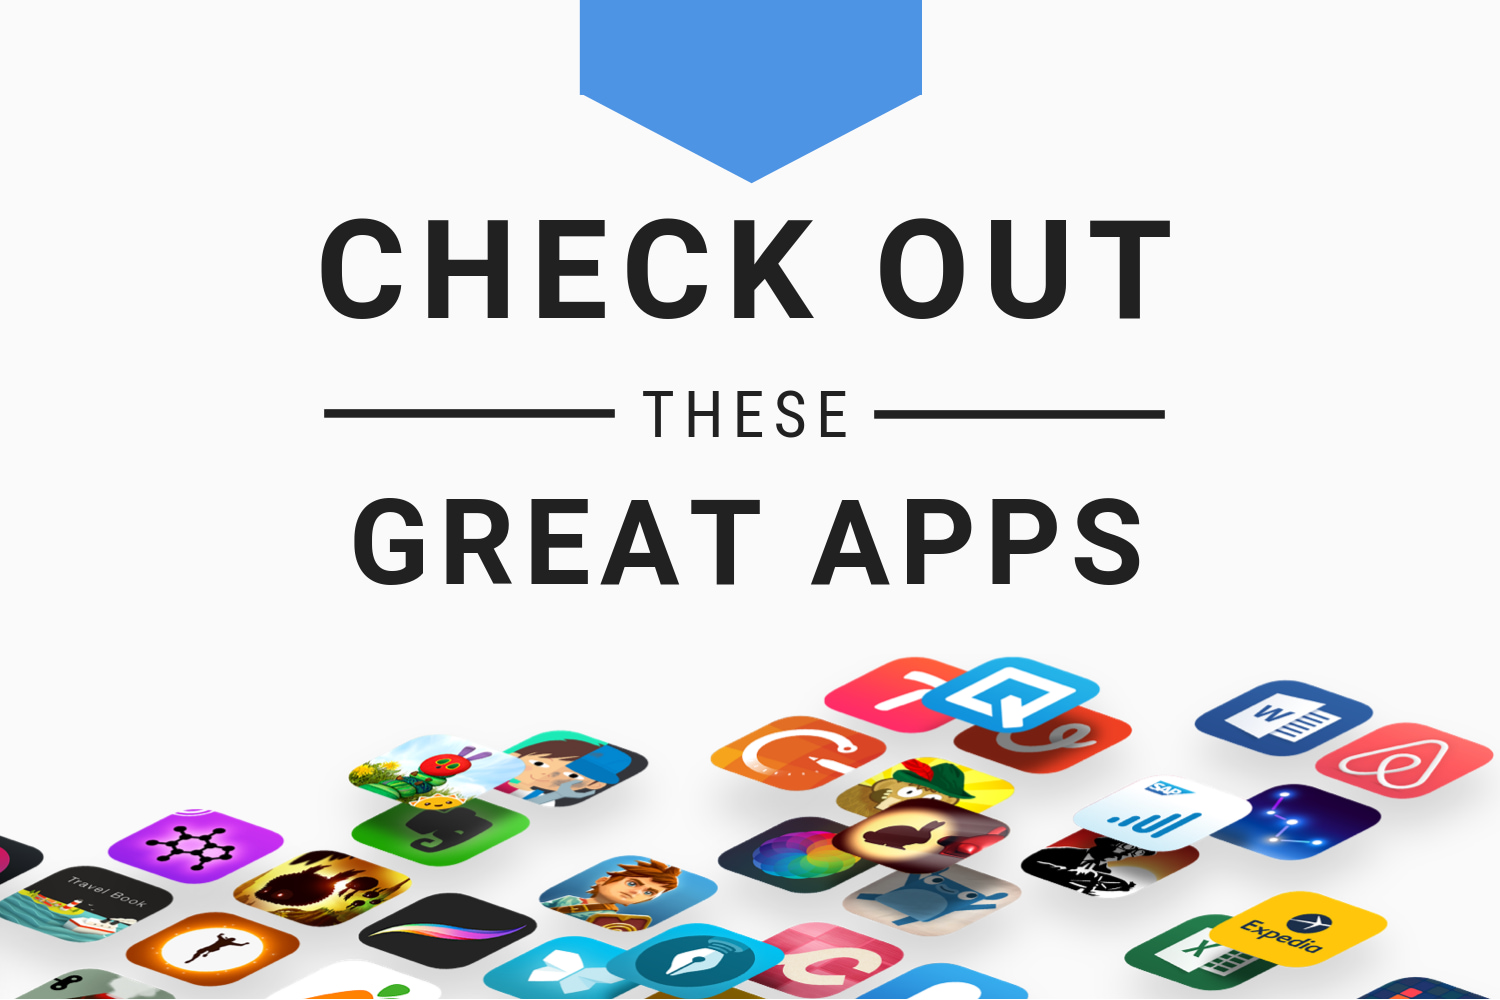 Morphin, Anyride, TapText, and other apps to check out this weekend